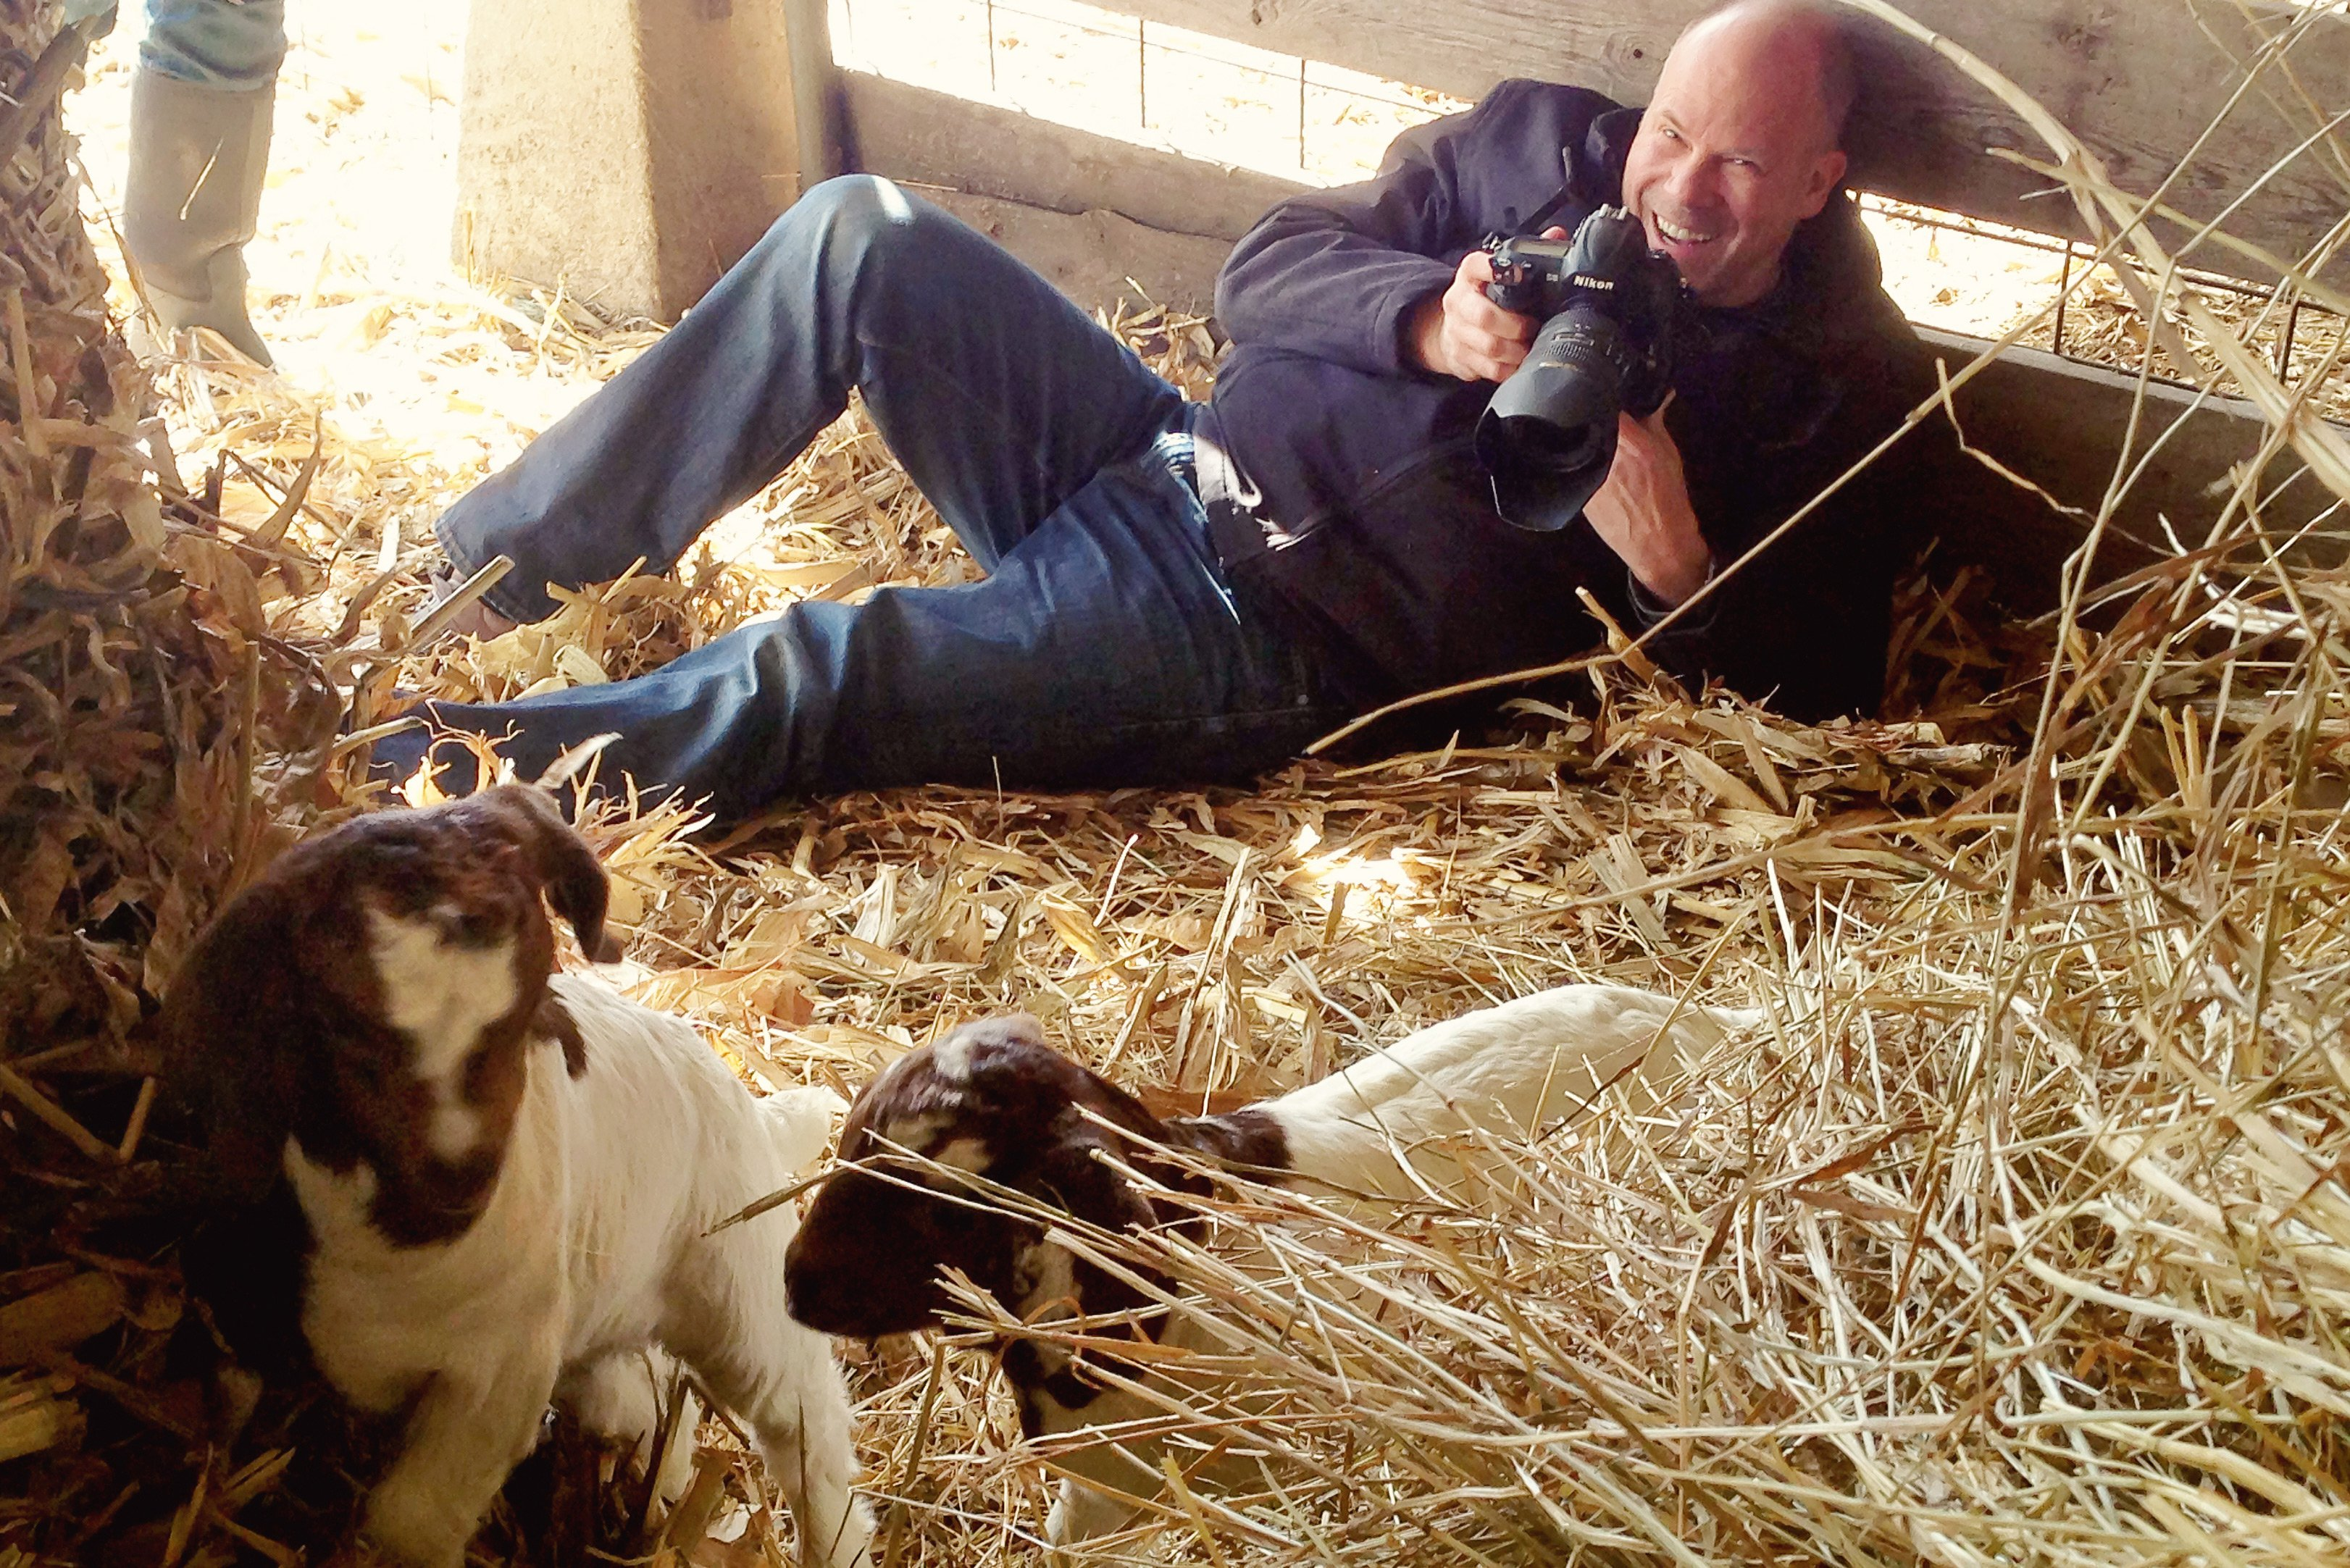 Dean Photographing baby goats on a farm in Iowa.